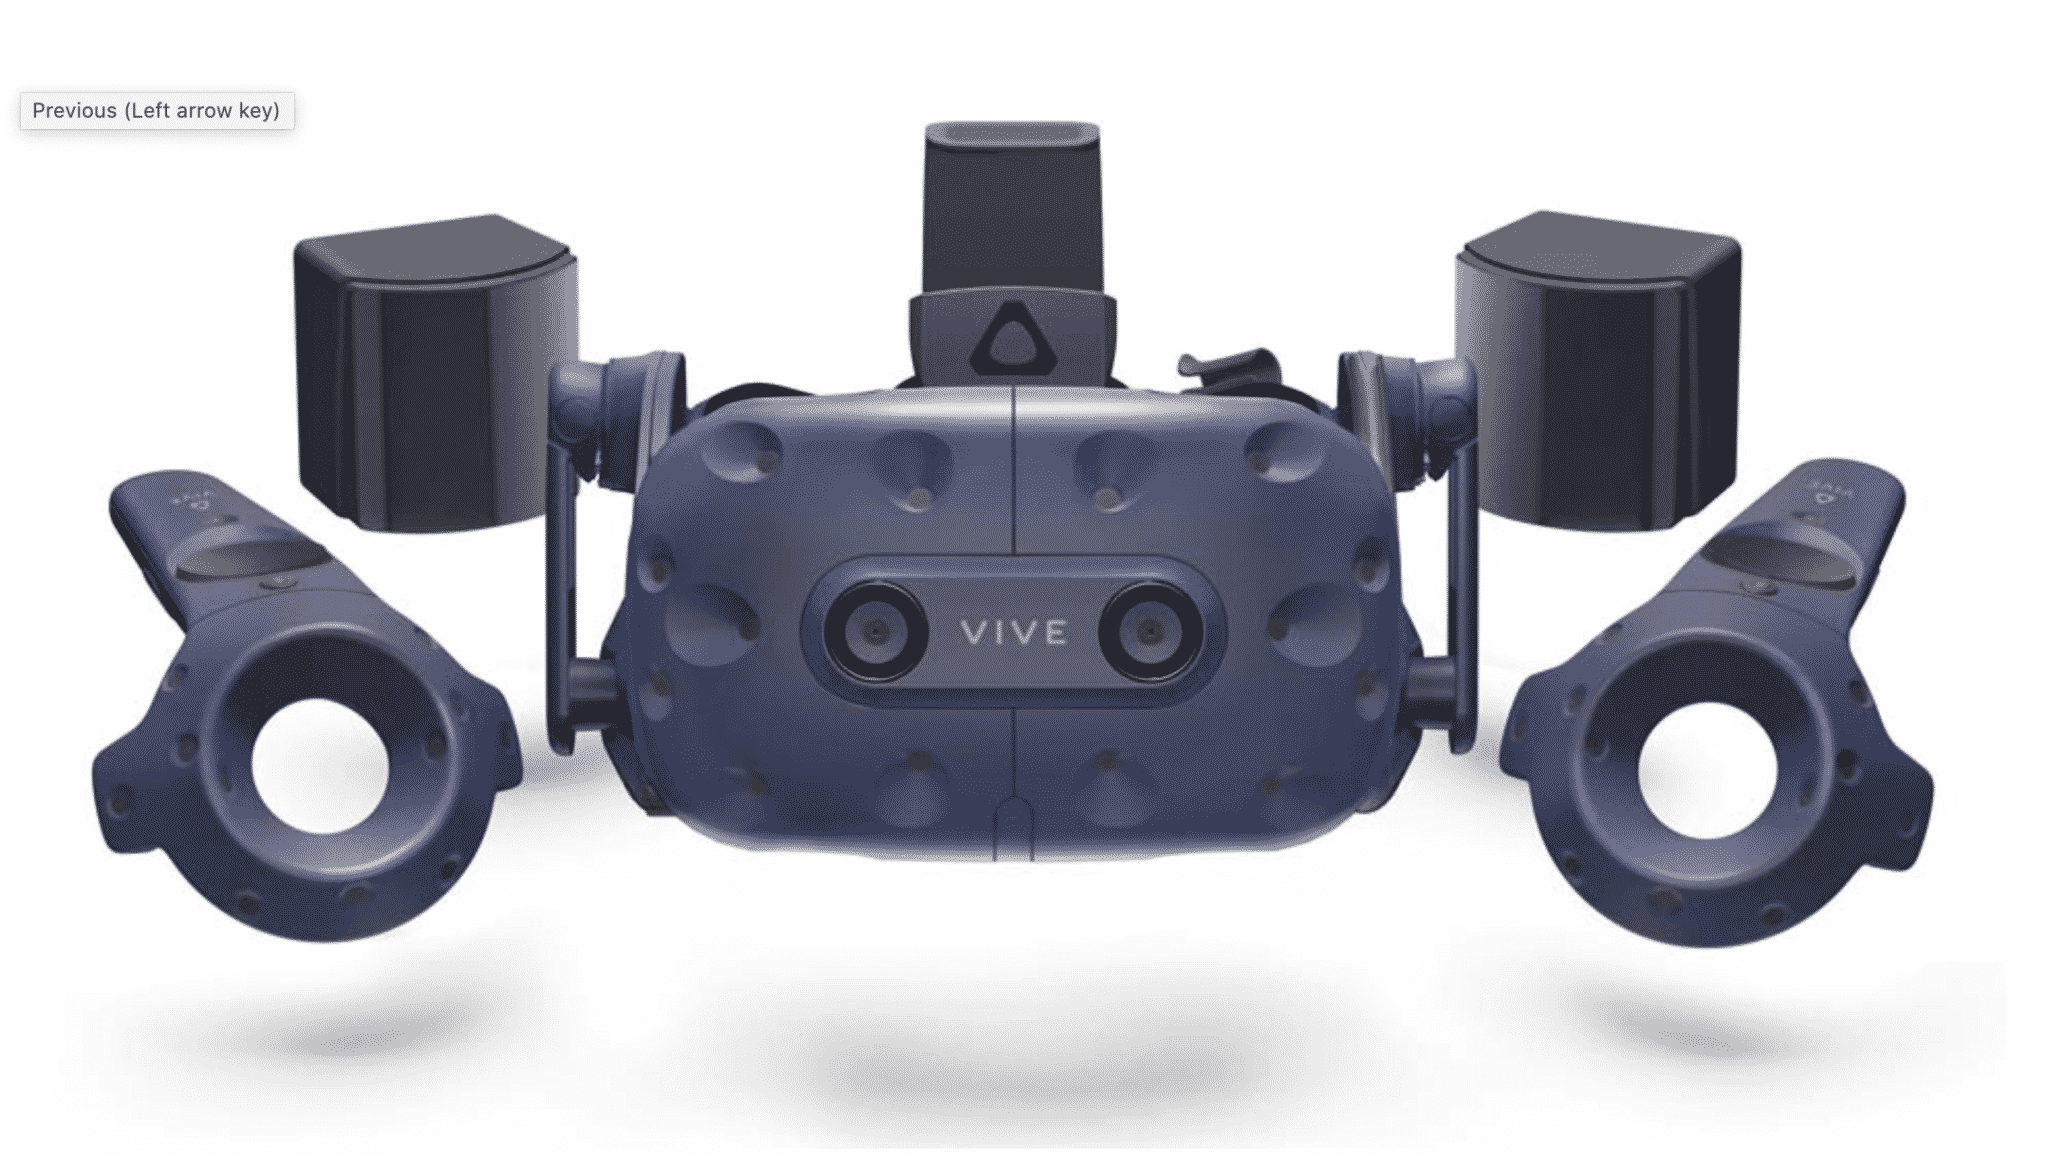 Vive Pro one of the best VR headsets for 2019